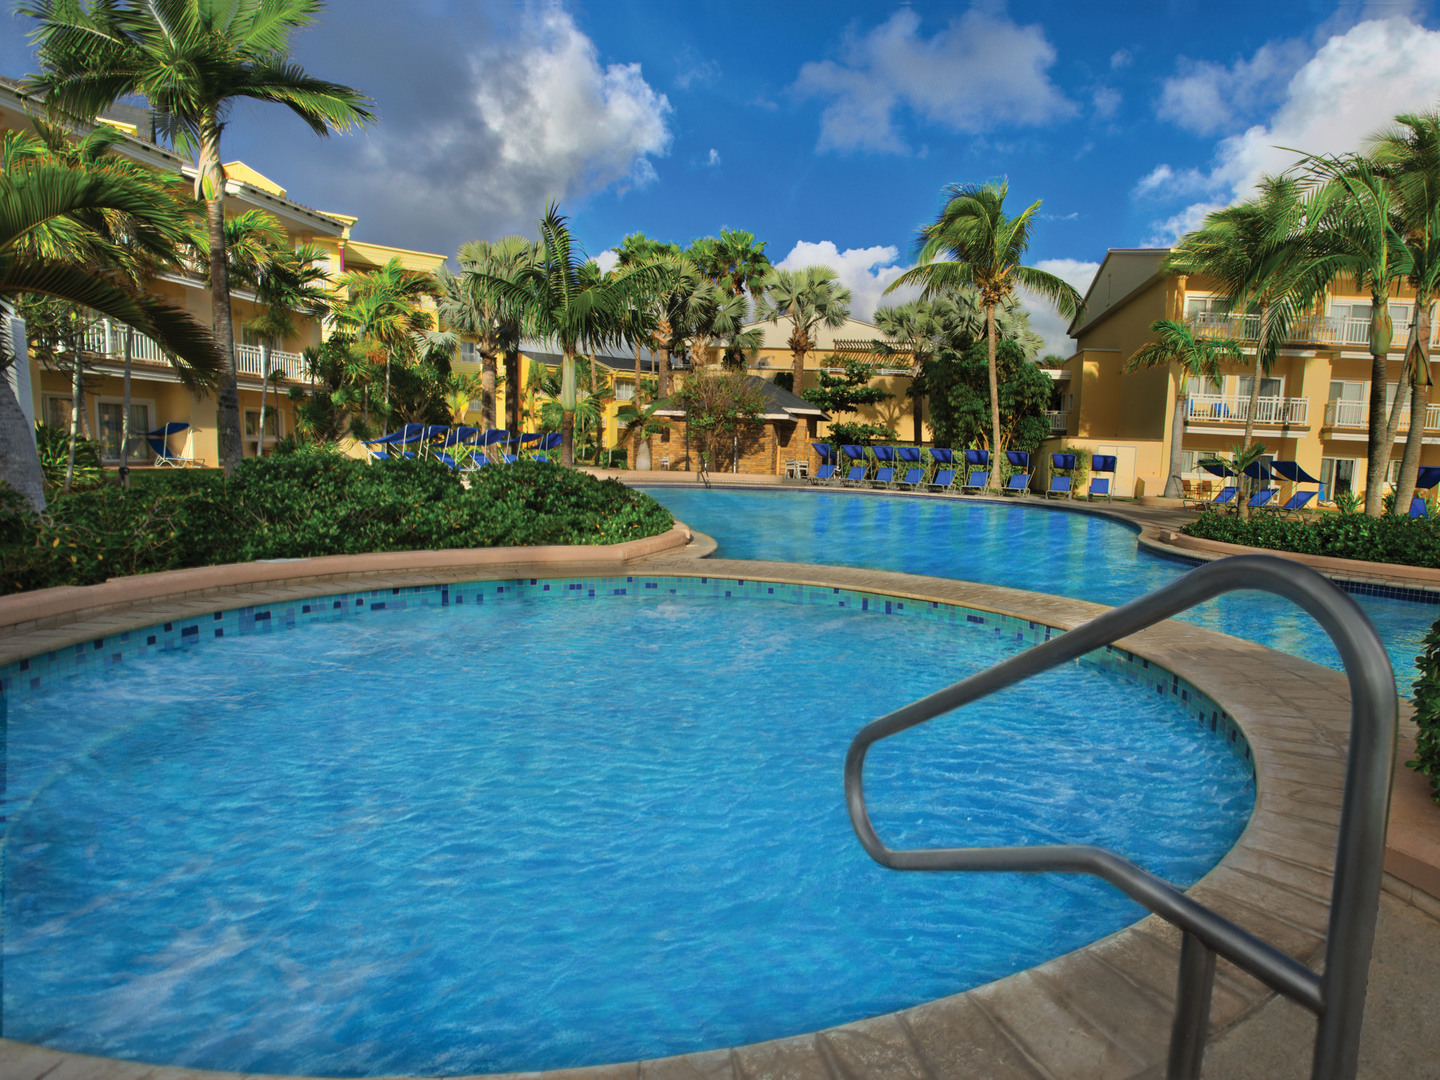 Marriott's St. Kitts Beach Club North Pool. Marriott's St. Kitts Beach Club is located in St. Kitts,  St. Kitts and Nevis.